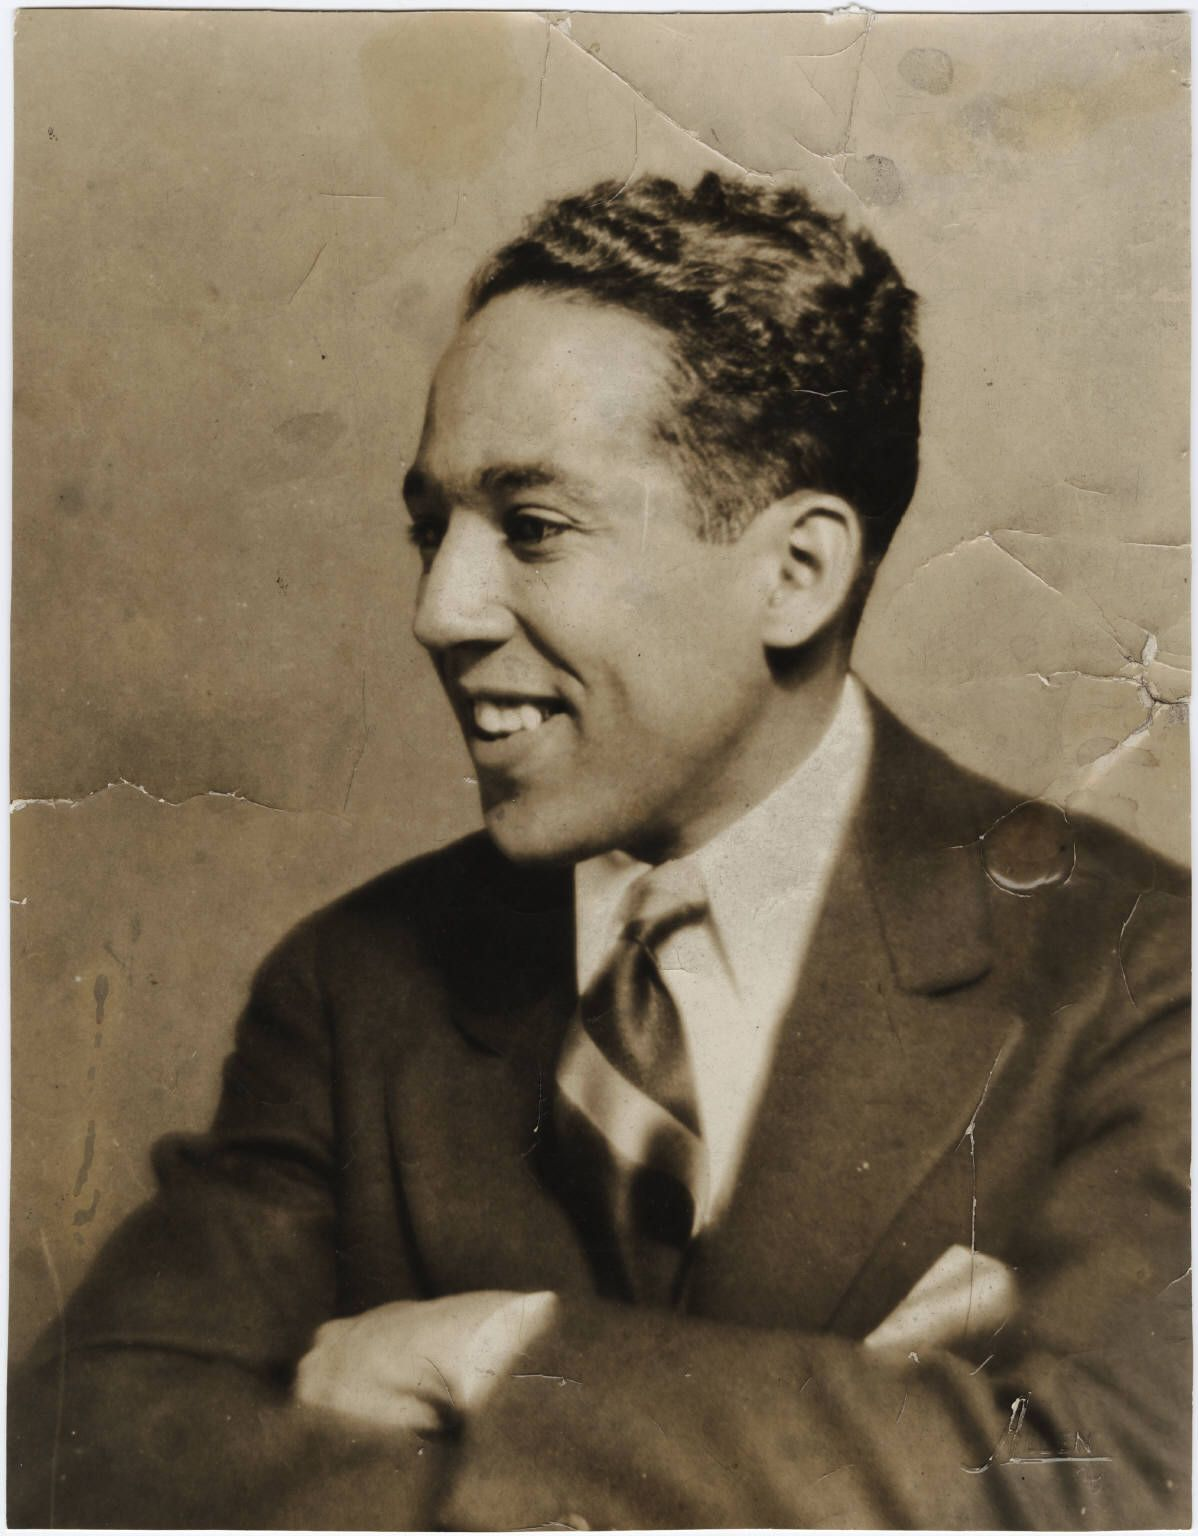 harlem renaissance poets Famous short harlem renaissance poems short harlem renaissance poetry by famous poets a collection of the all-time best harlem renaissance short poems.